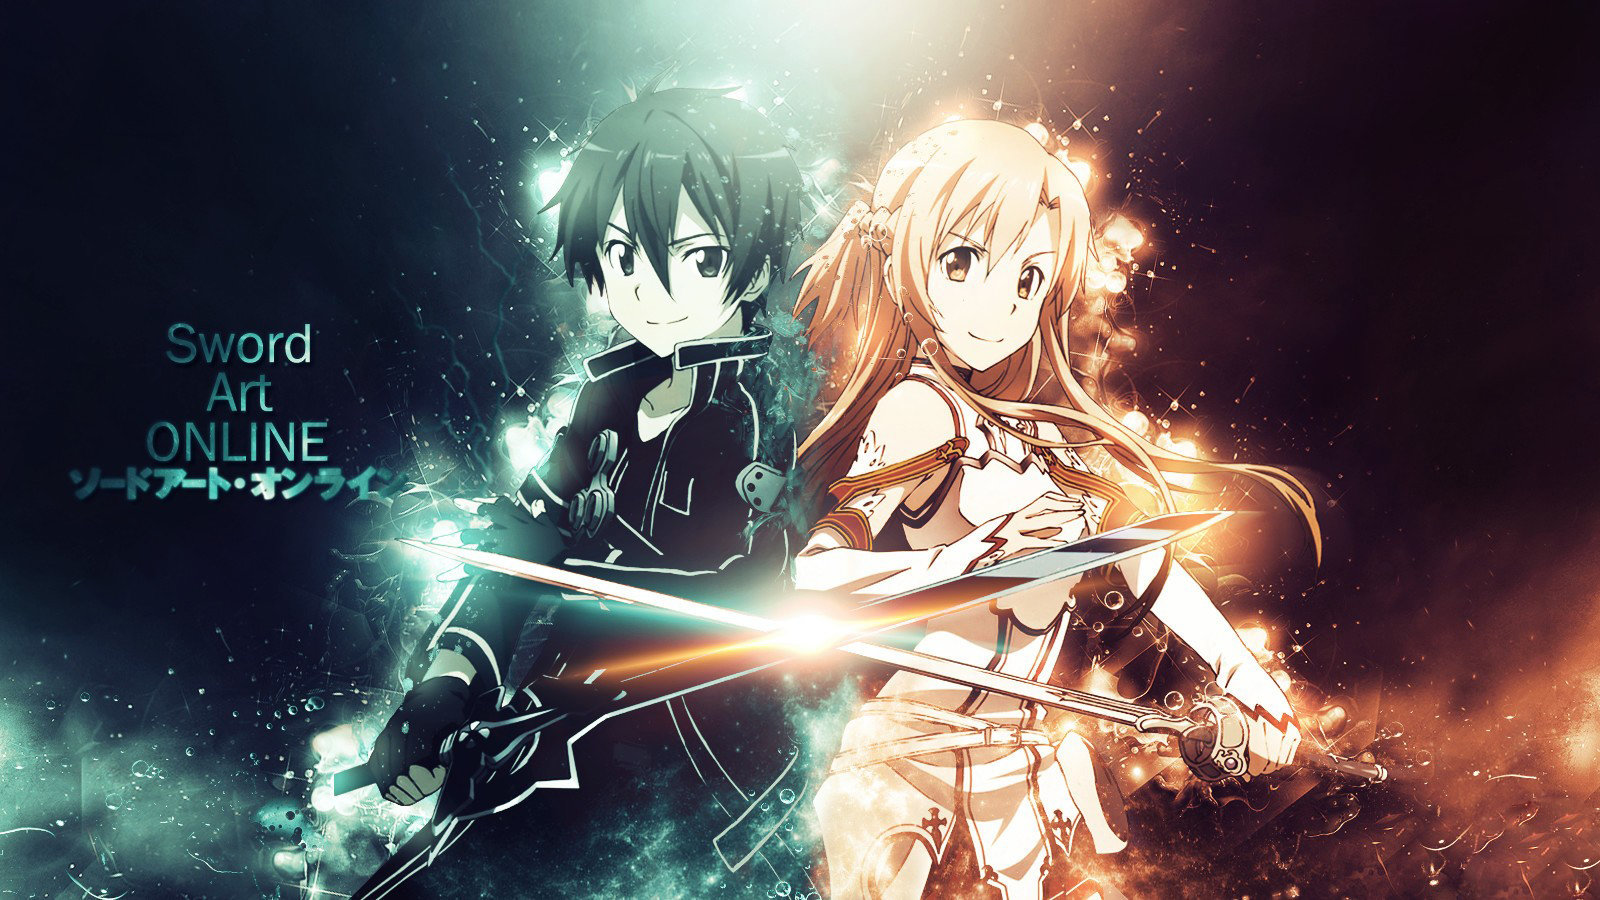 High resolution Sword Art Online (SAO) hd 1600x900 wallpaper ID:180702 for PC